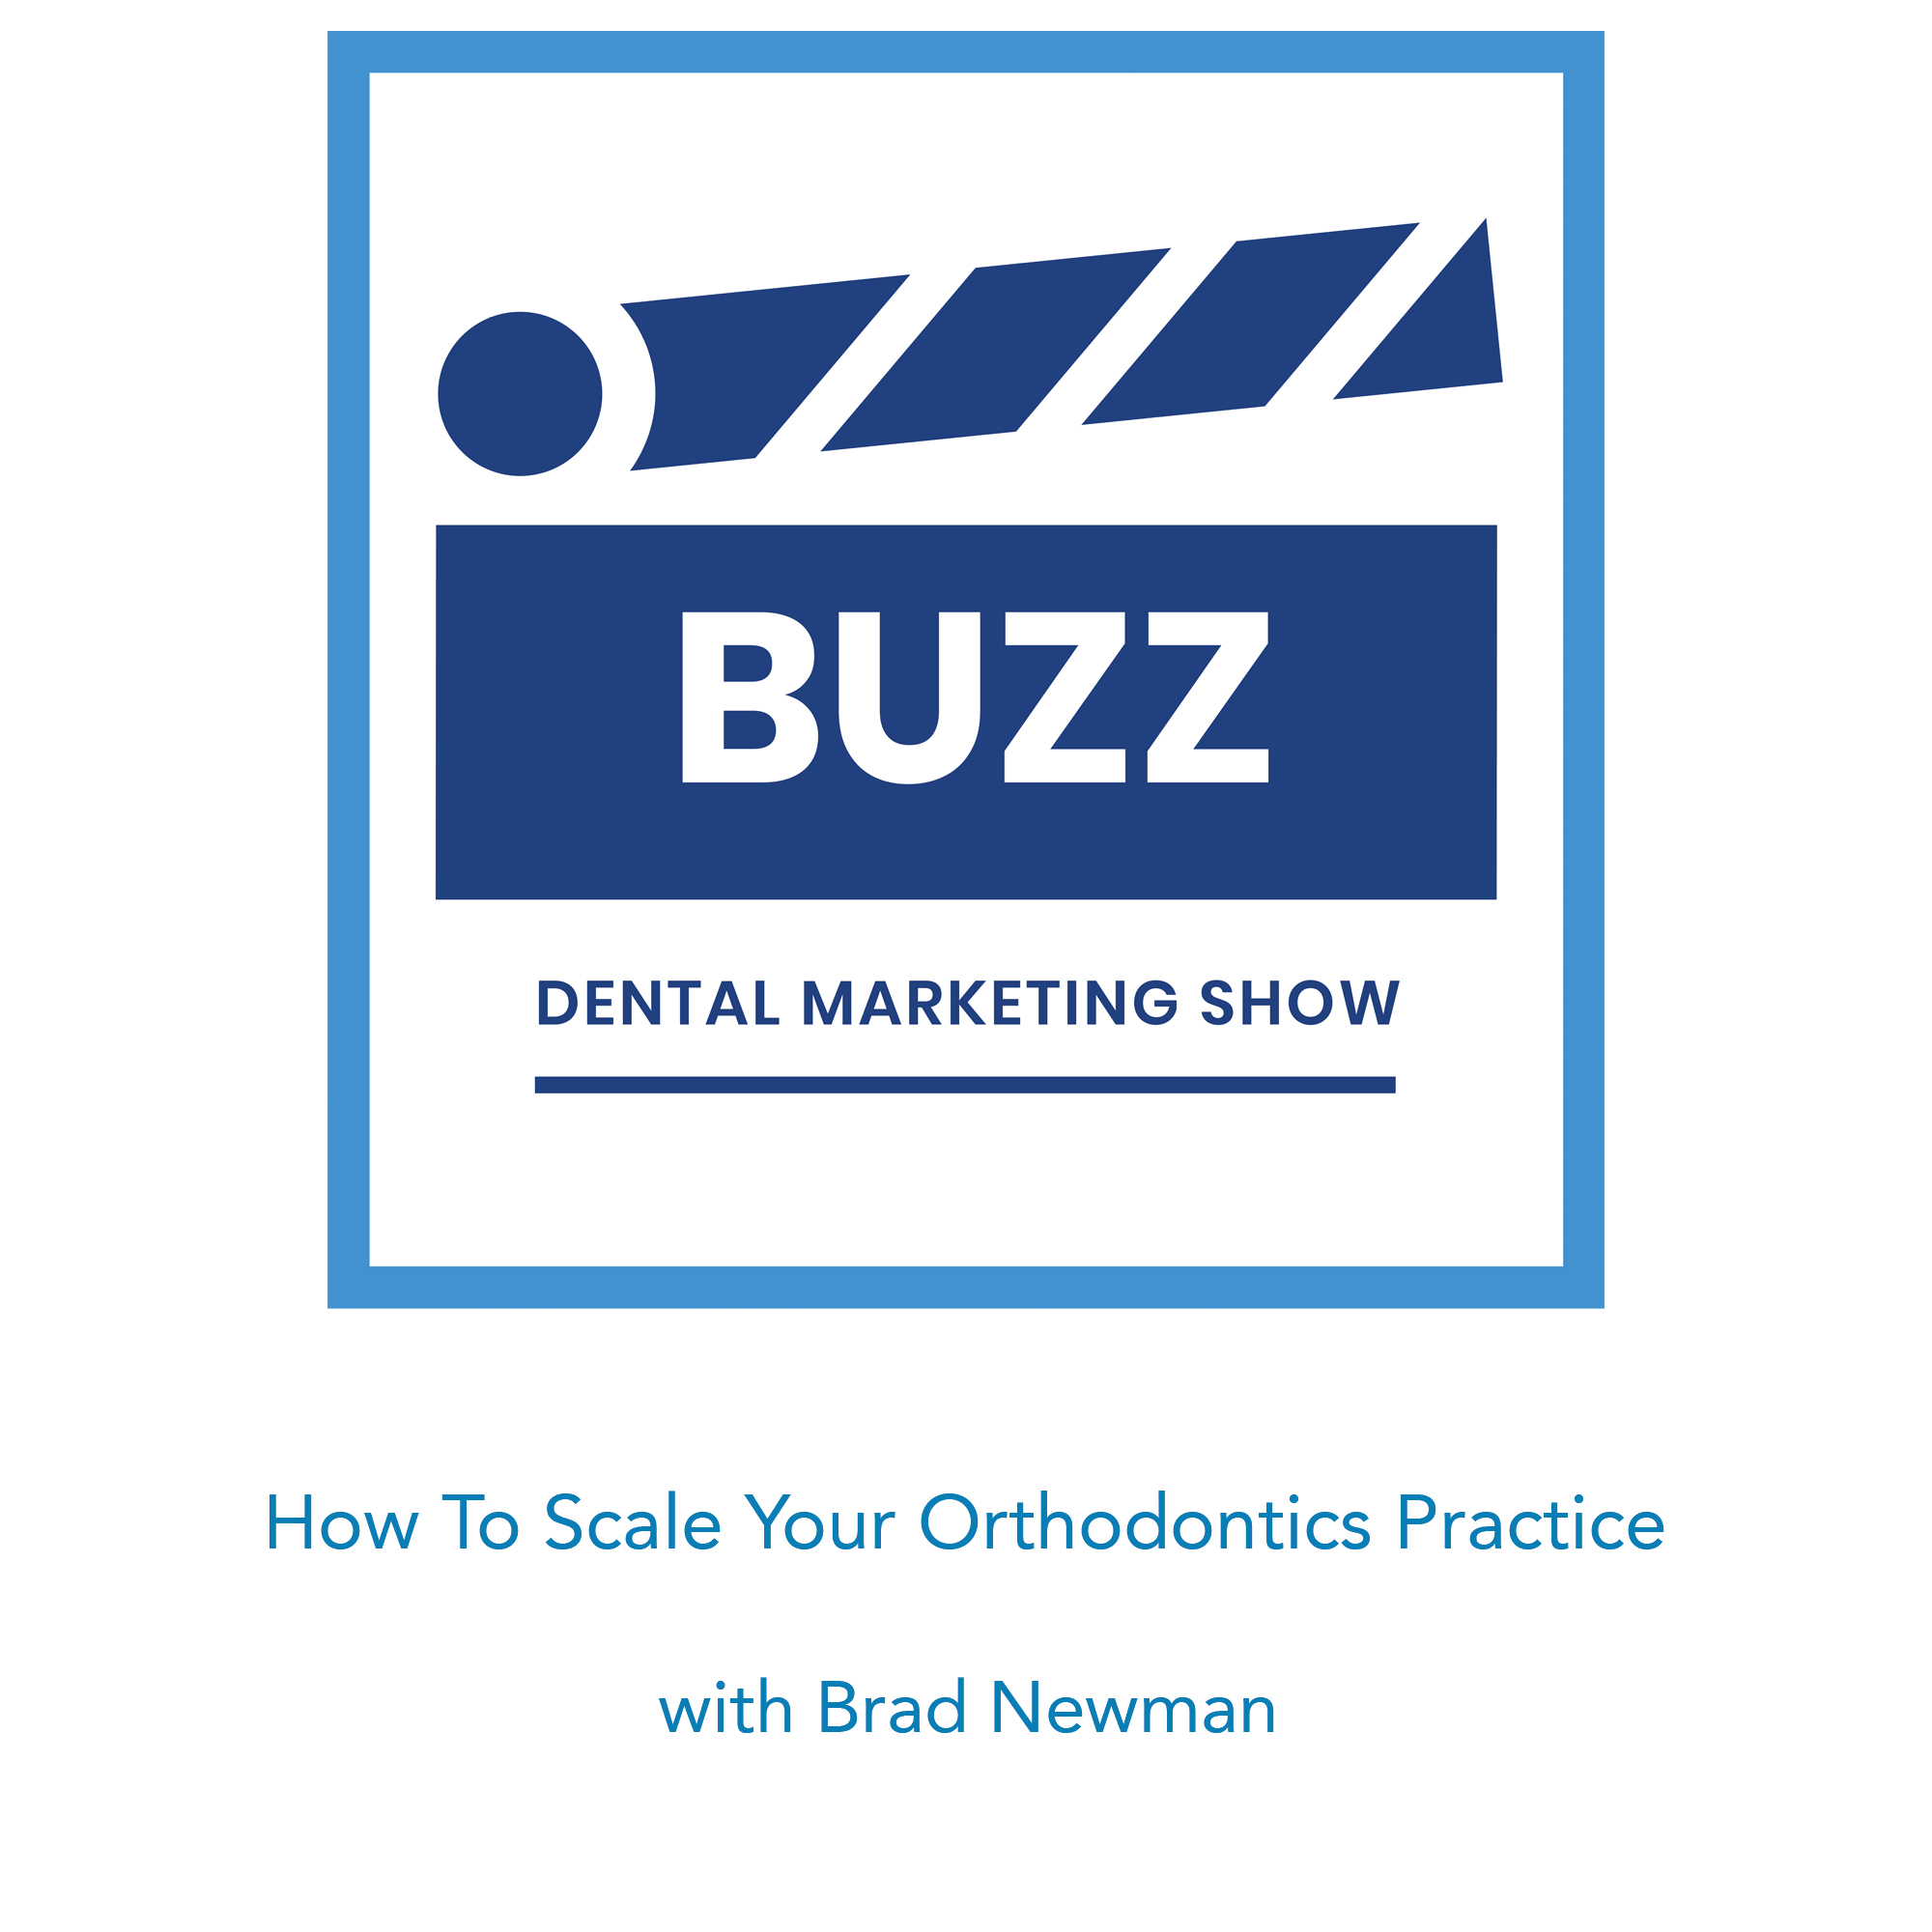 How To Scale Your Orthodontics Practice